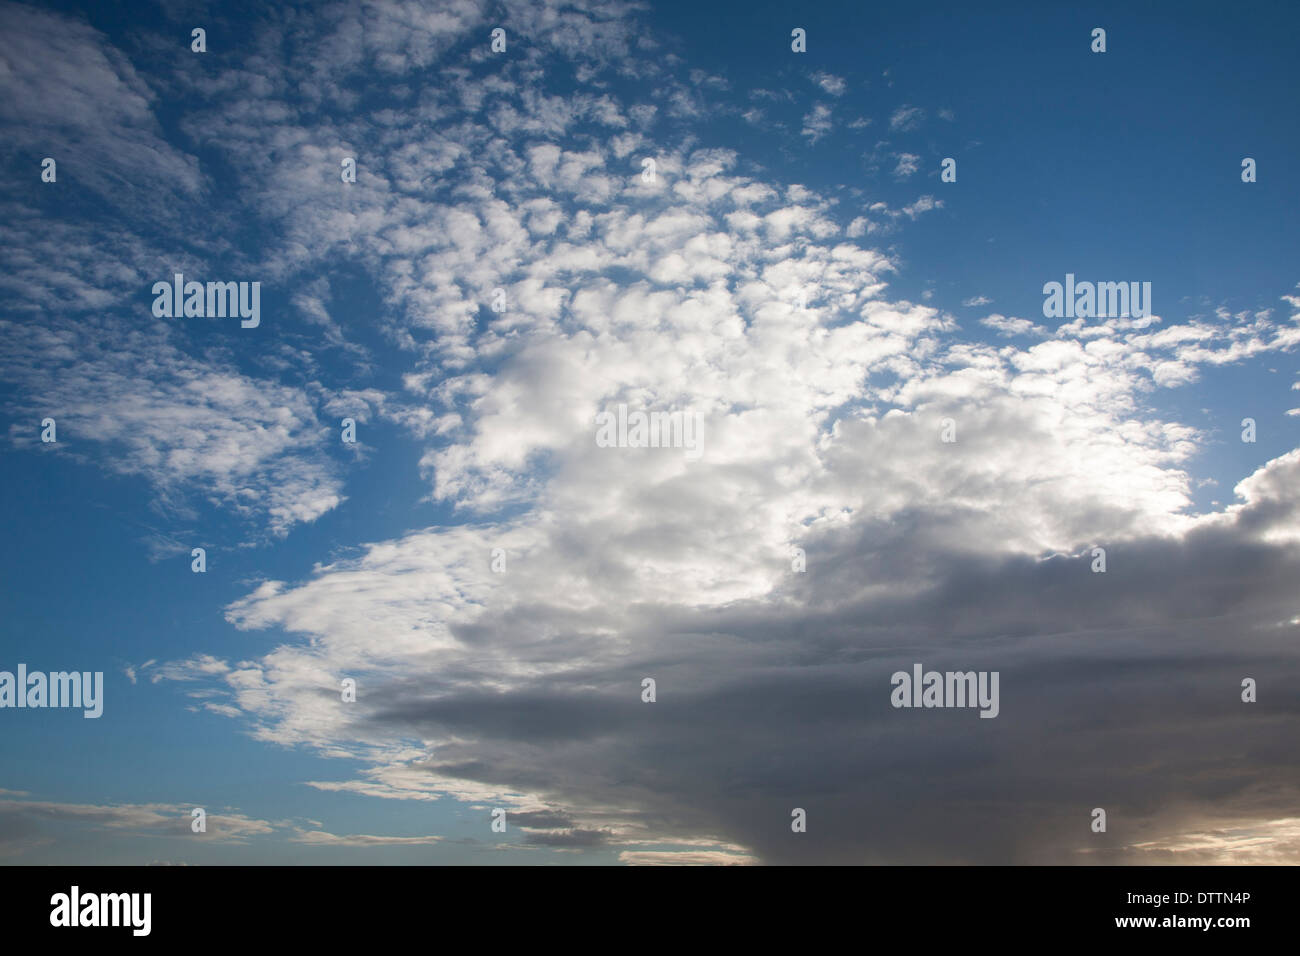 Frontal clouds moving over the sky blocking out the sun at Suffolk, England - Stock Image